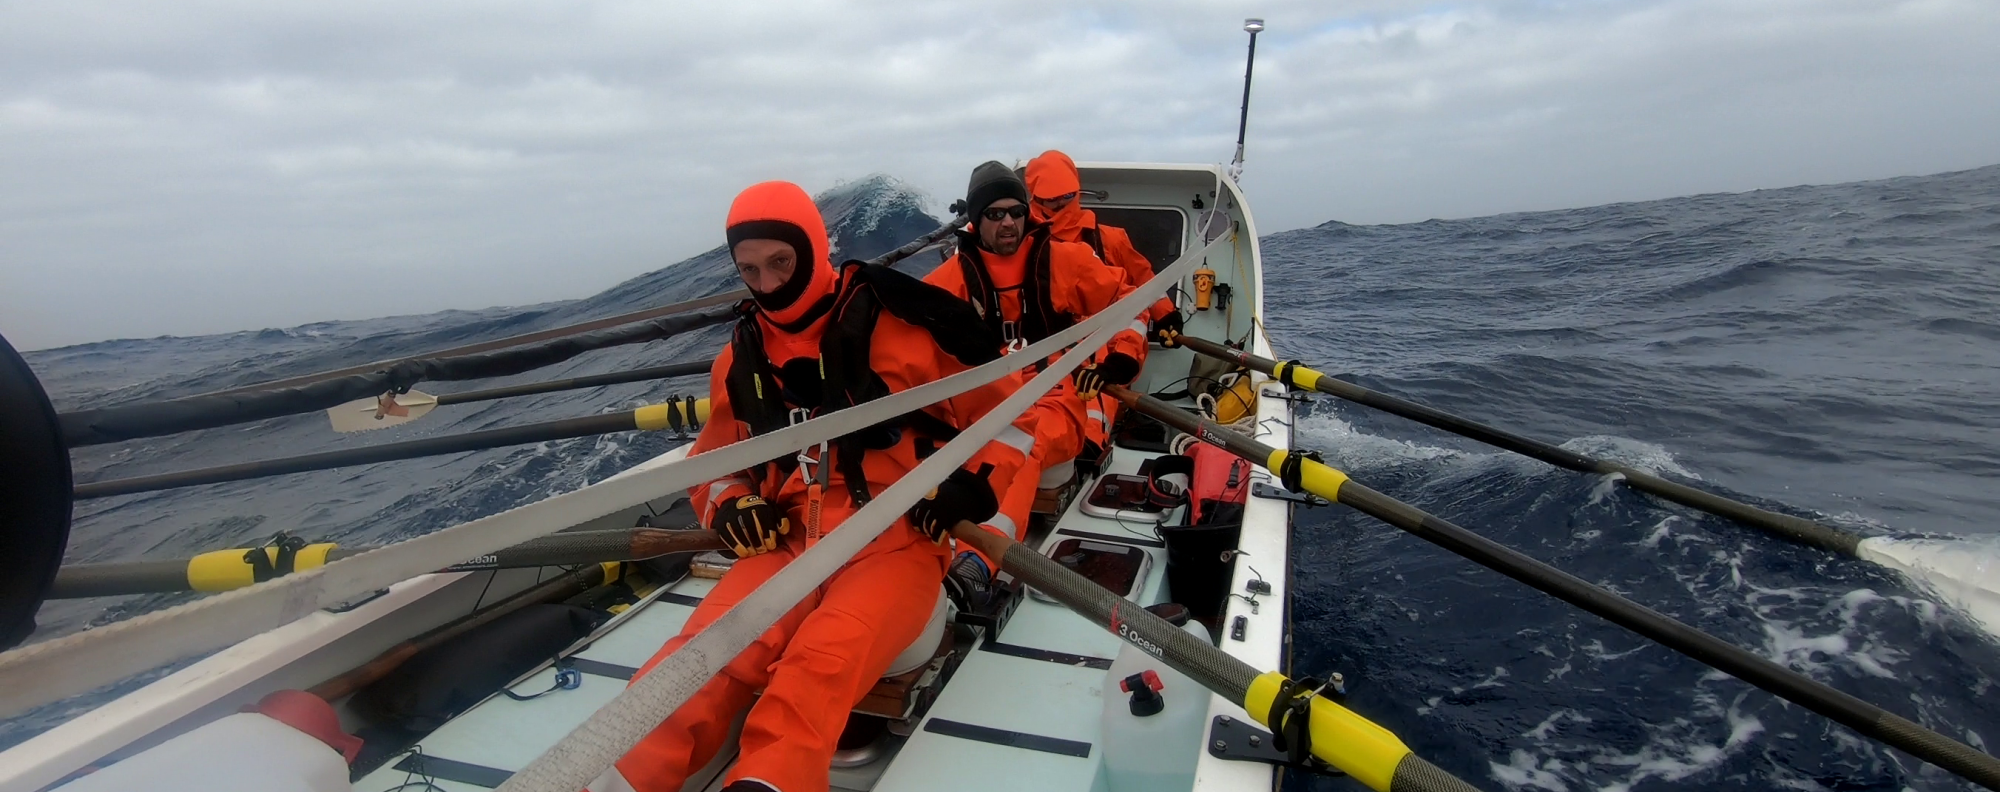 A team of six achieved three world firsts by rowing from South America to Antarctica across the Drake Passage. Photos: Handout